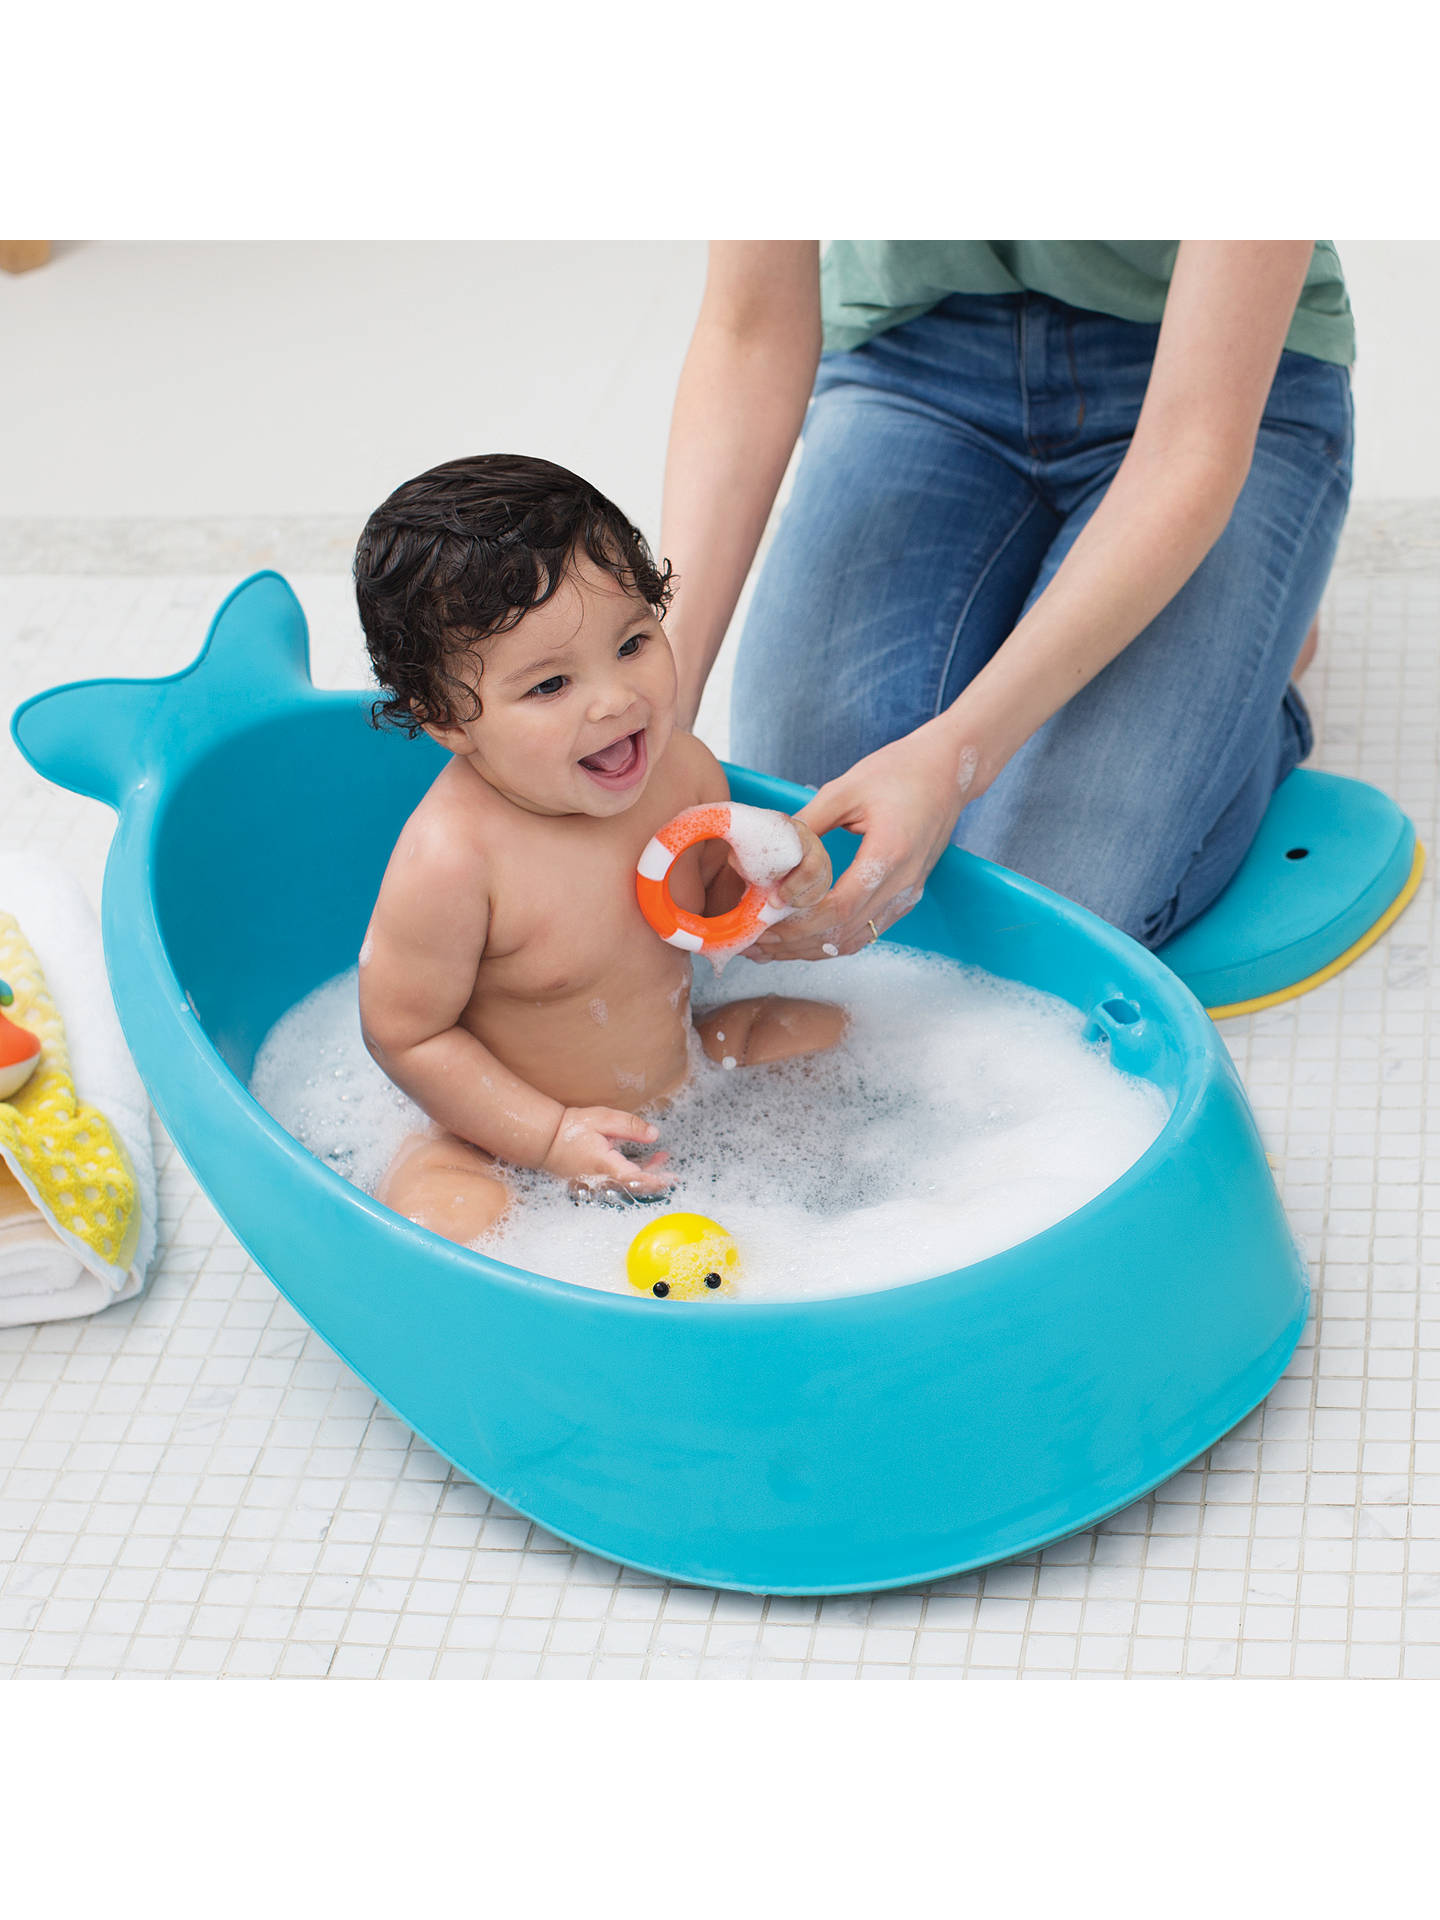 Skip Hop Moby 3 Stage Baby Bath Tub, Blue at John Lewis & Partners